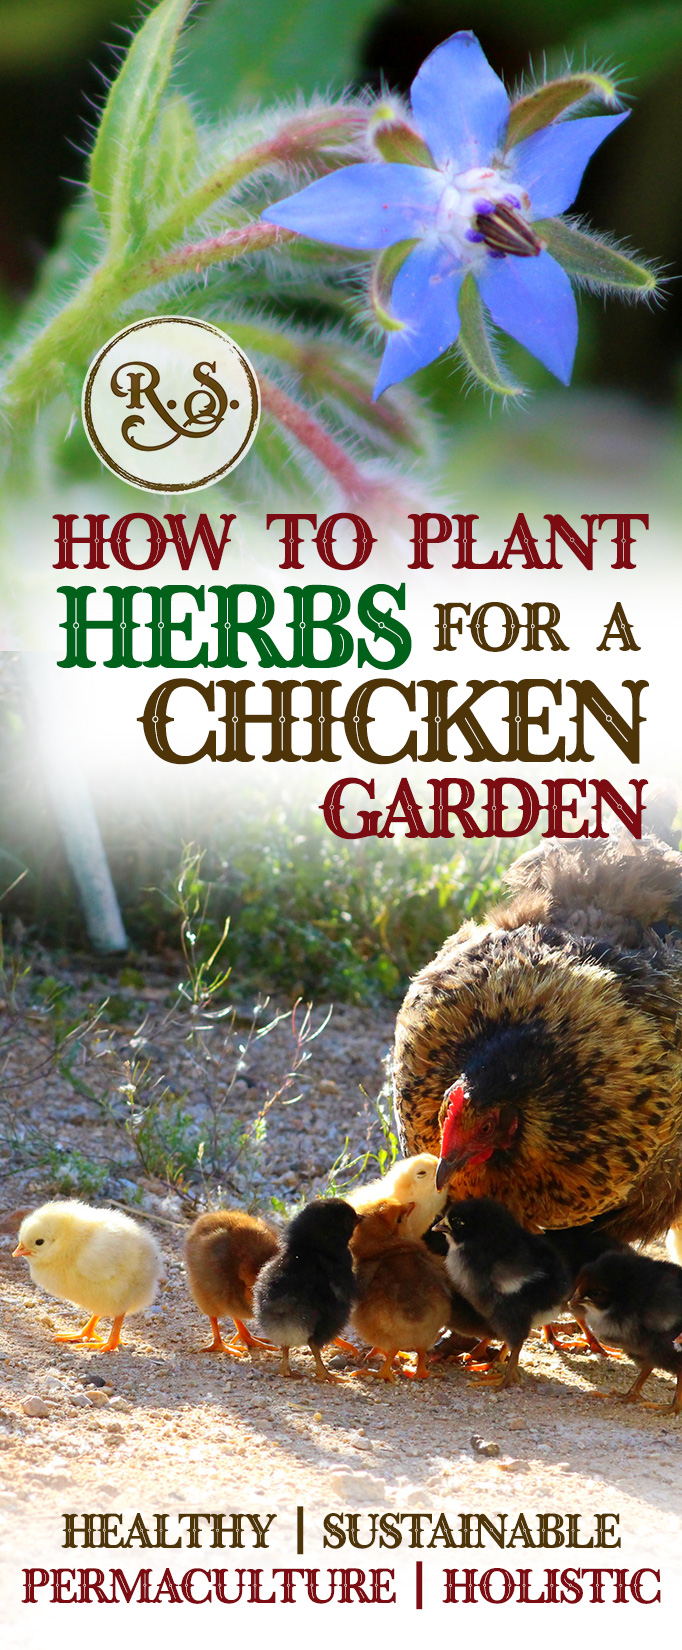 Grow herbs in your sustainable garden for your backyard chickens to save money. Natural health for your chickens—permaculture style. Great DIY herbal health ideas for your hens.